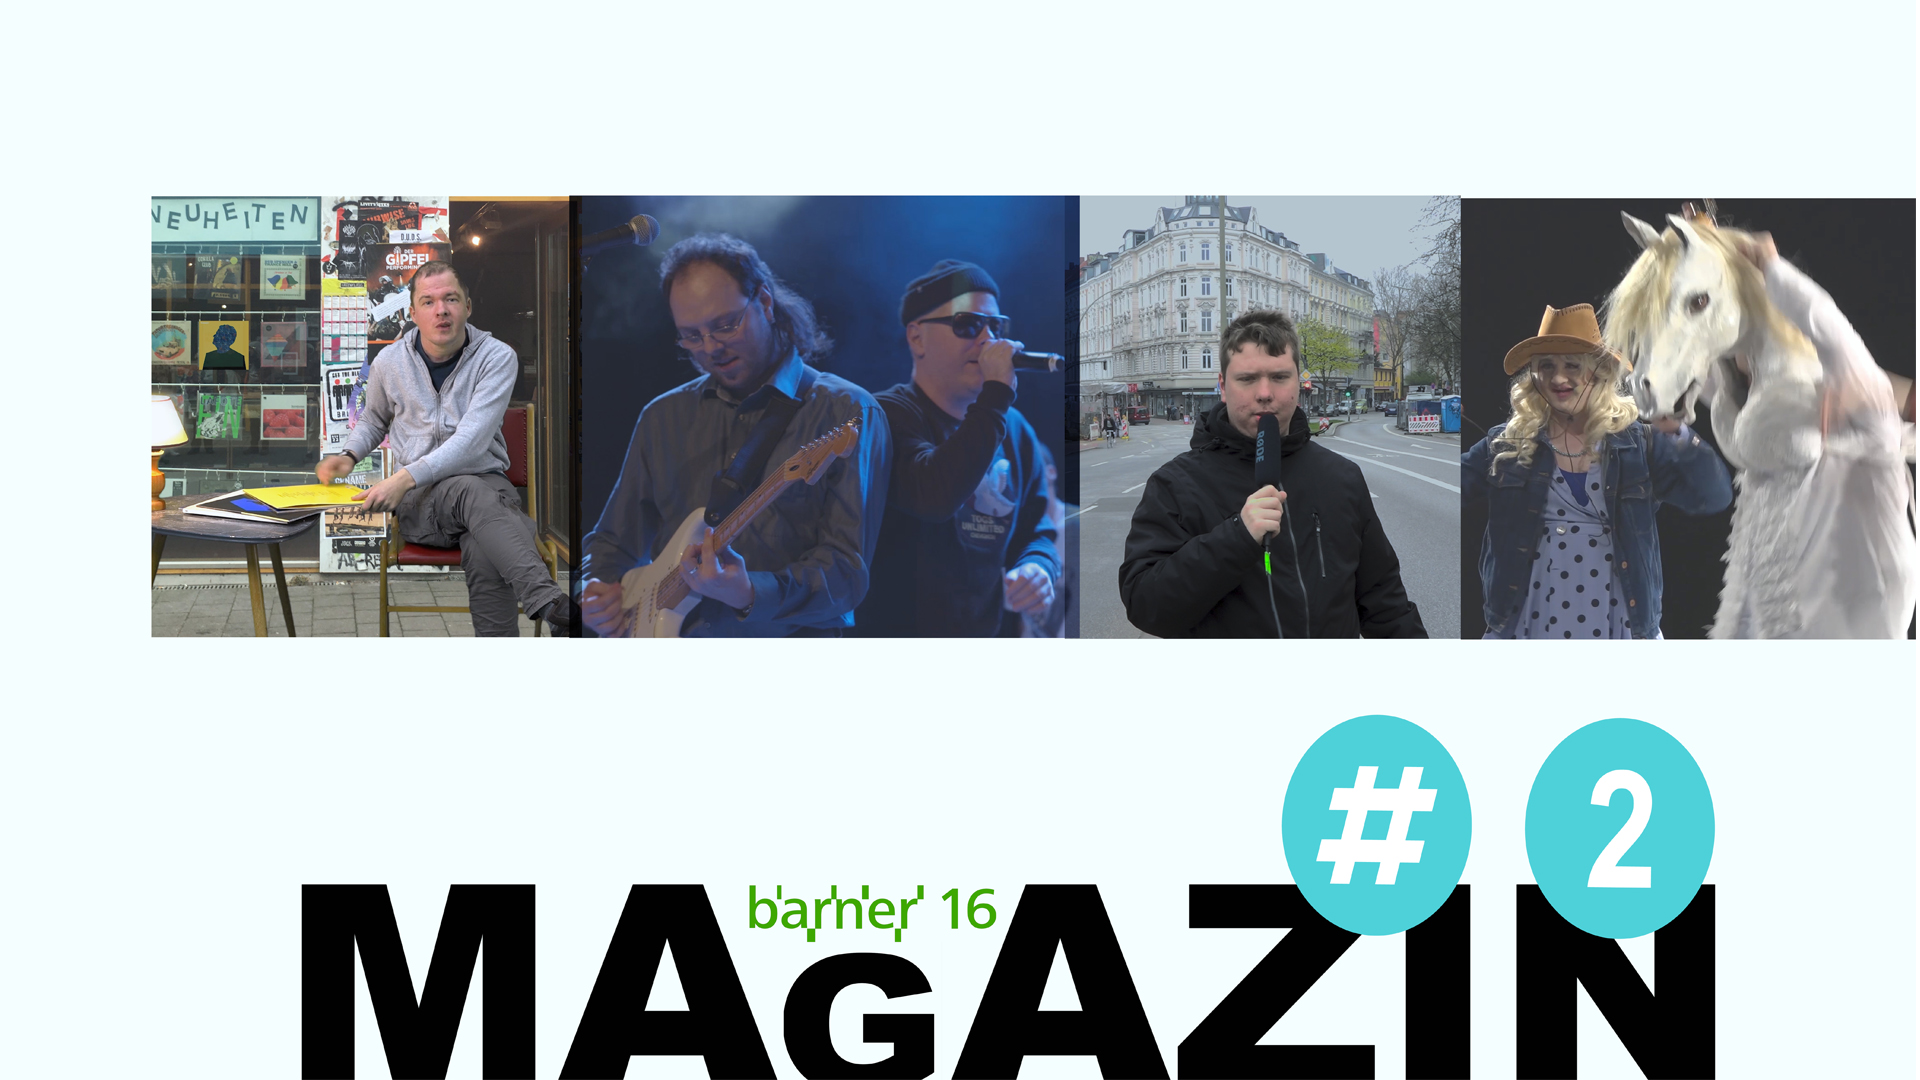 Video: barner 16 Magazin # 2